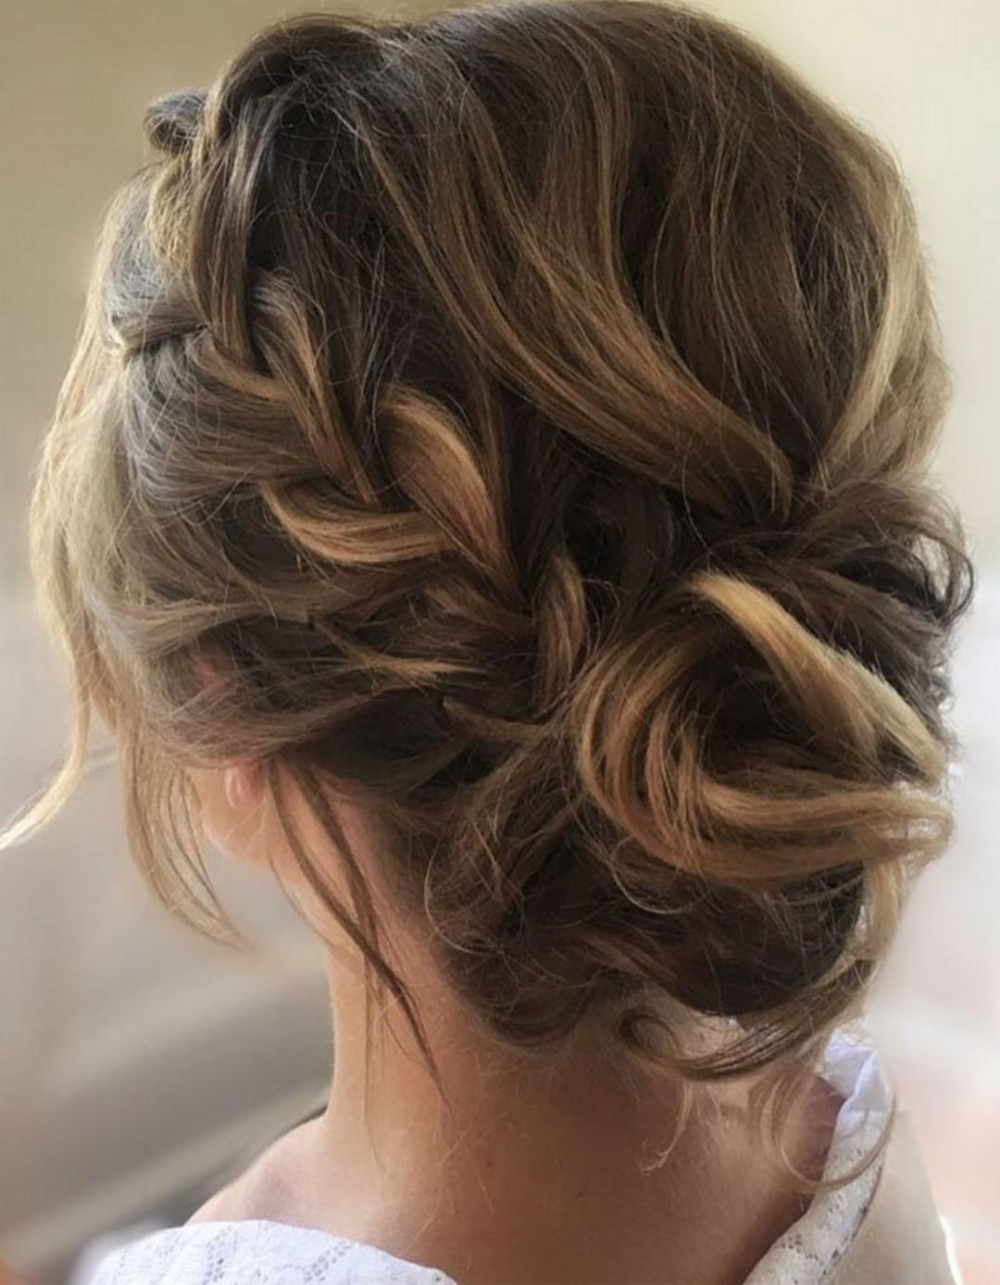 Easy Maid Of Honor Hairstyles Google Search Thick Hair Styles Braided Updo Styles Braided Hairstyles Updo